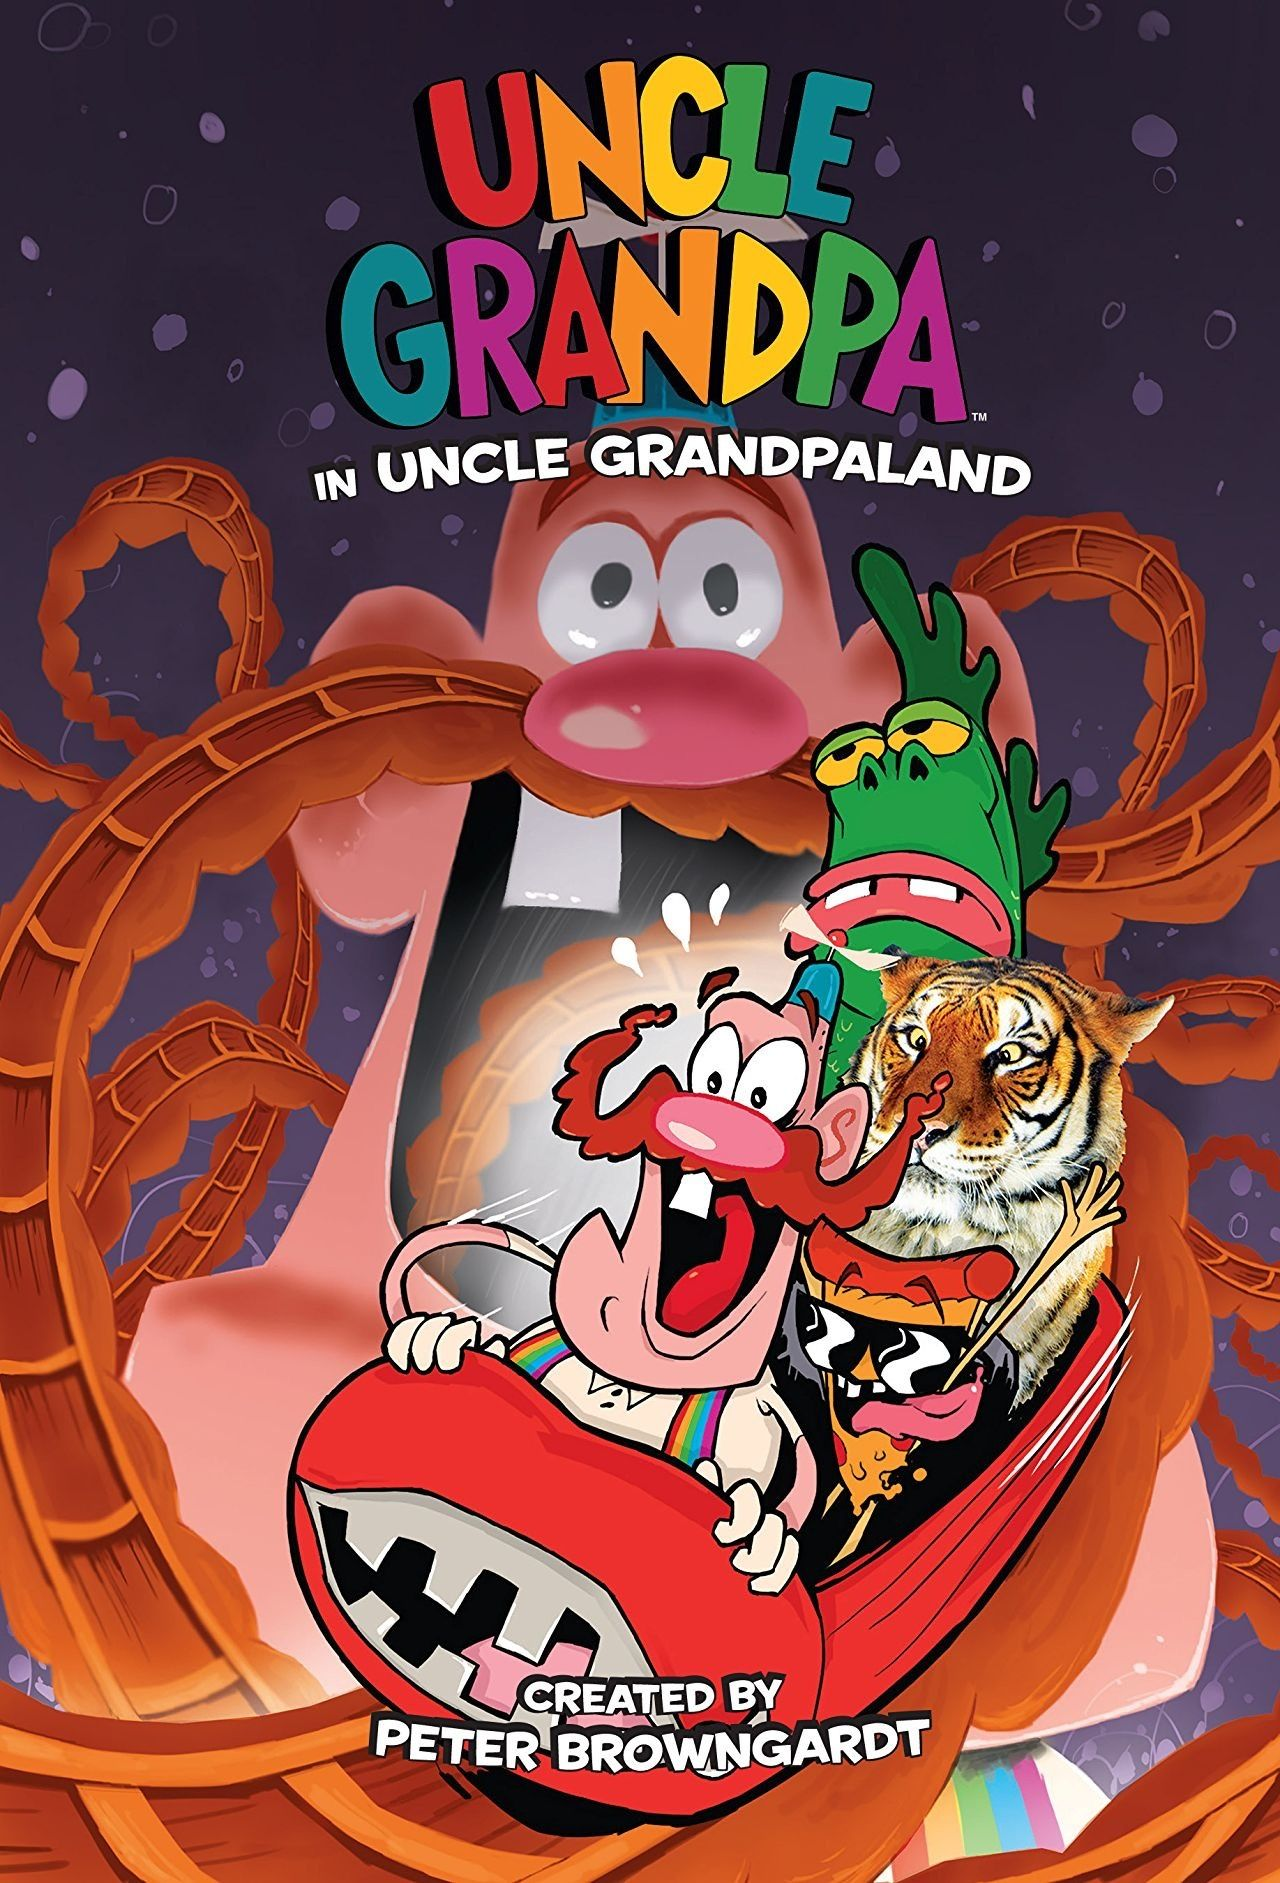 Pin By Natalie Medard The Leader Tom On Uncle Grandpa 2013 Uncle Grandpa Uncle Grandpa Cartoon Grandpa